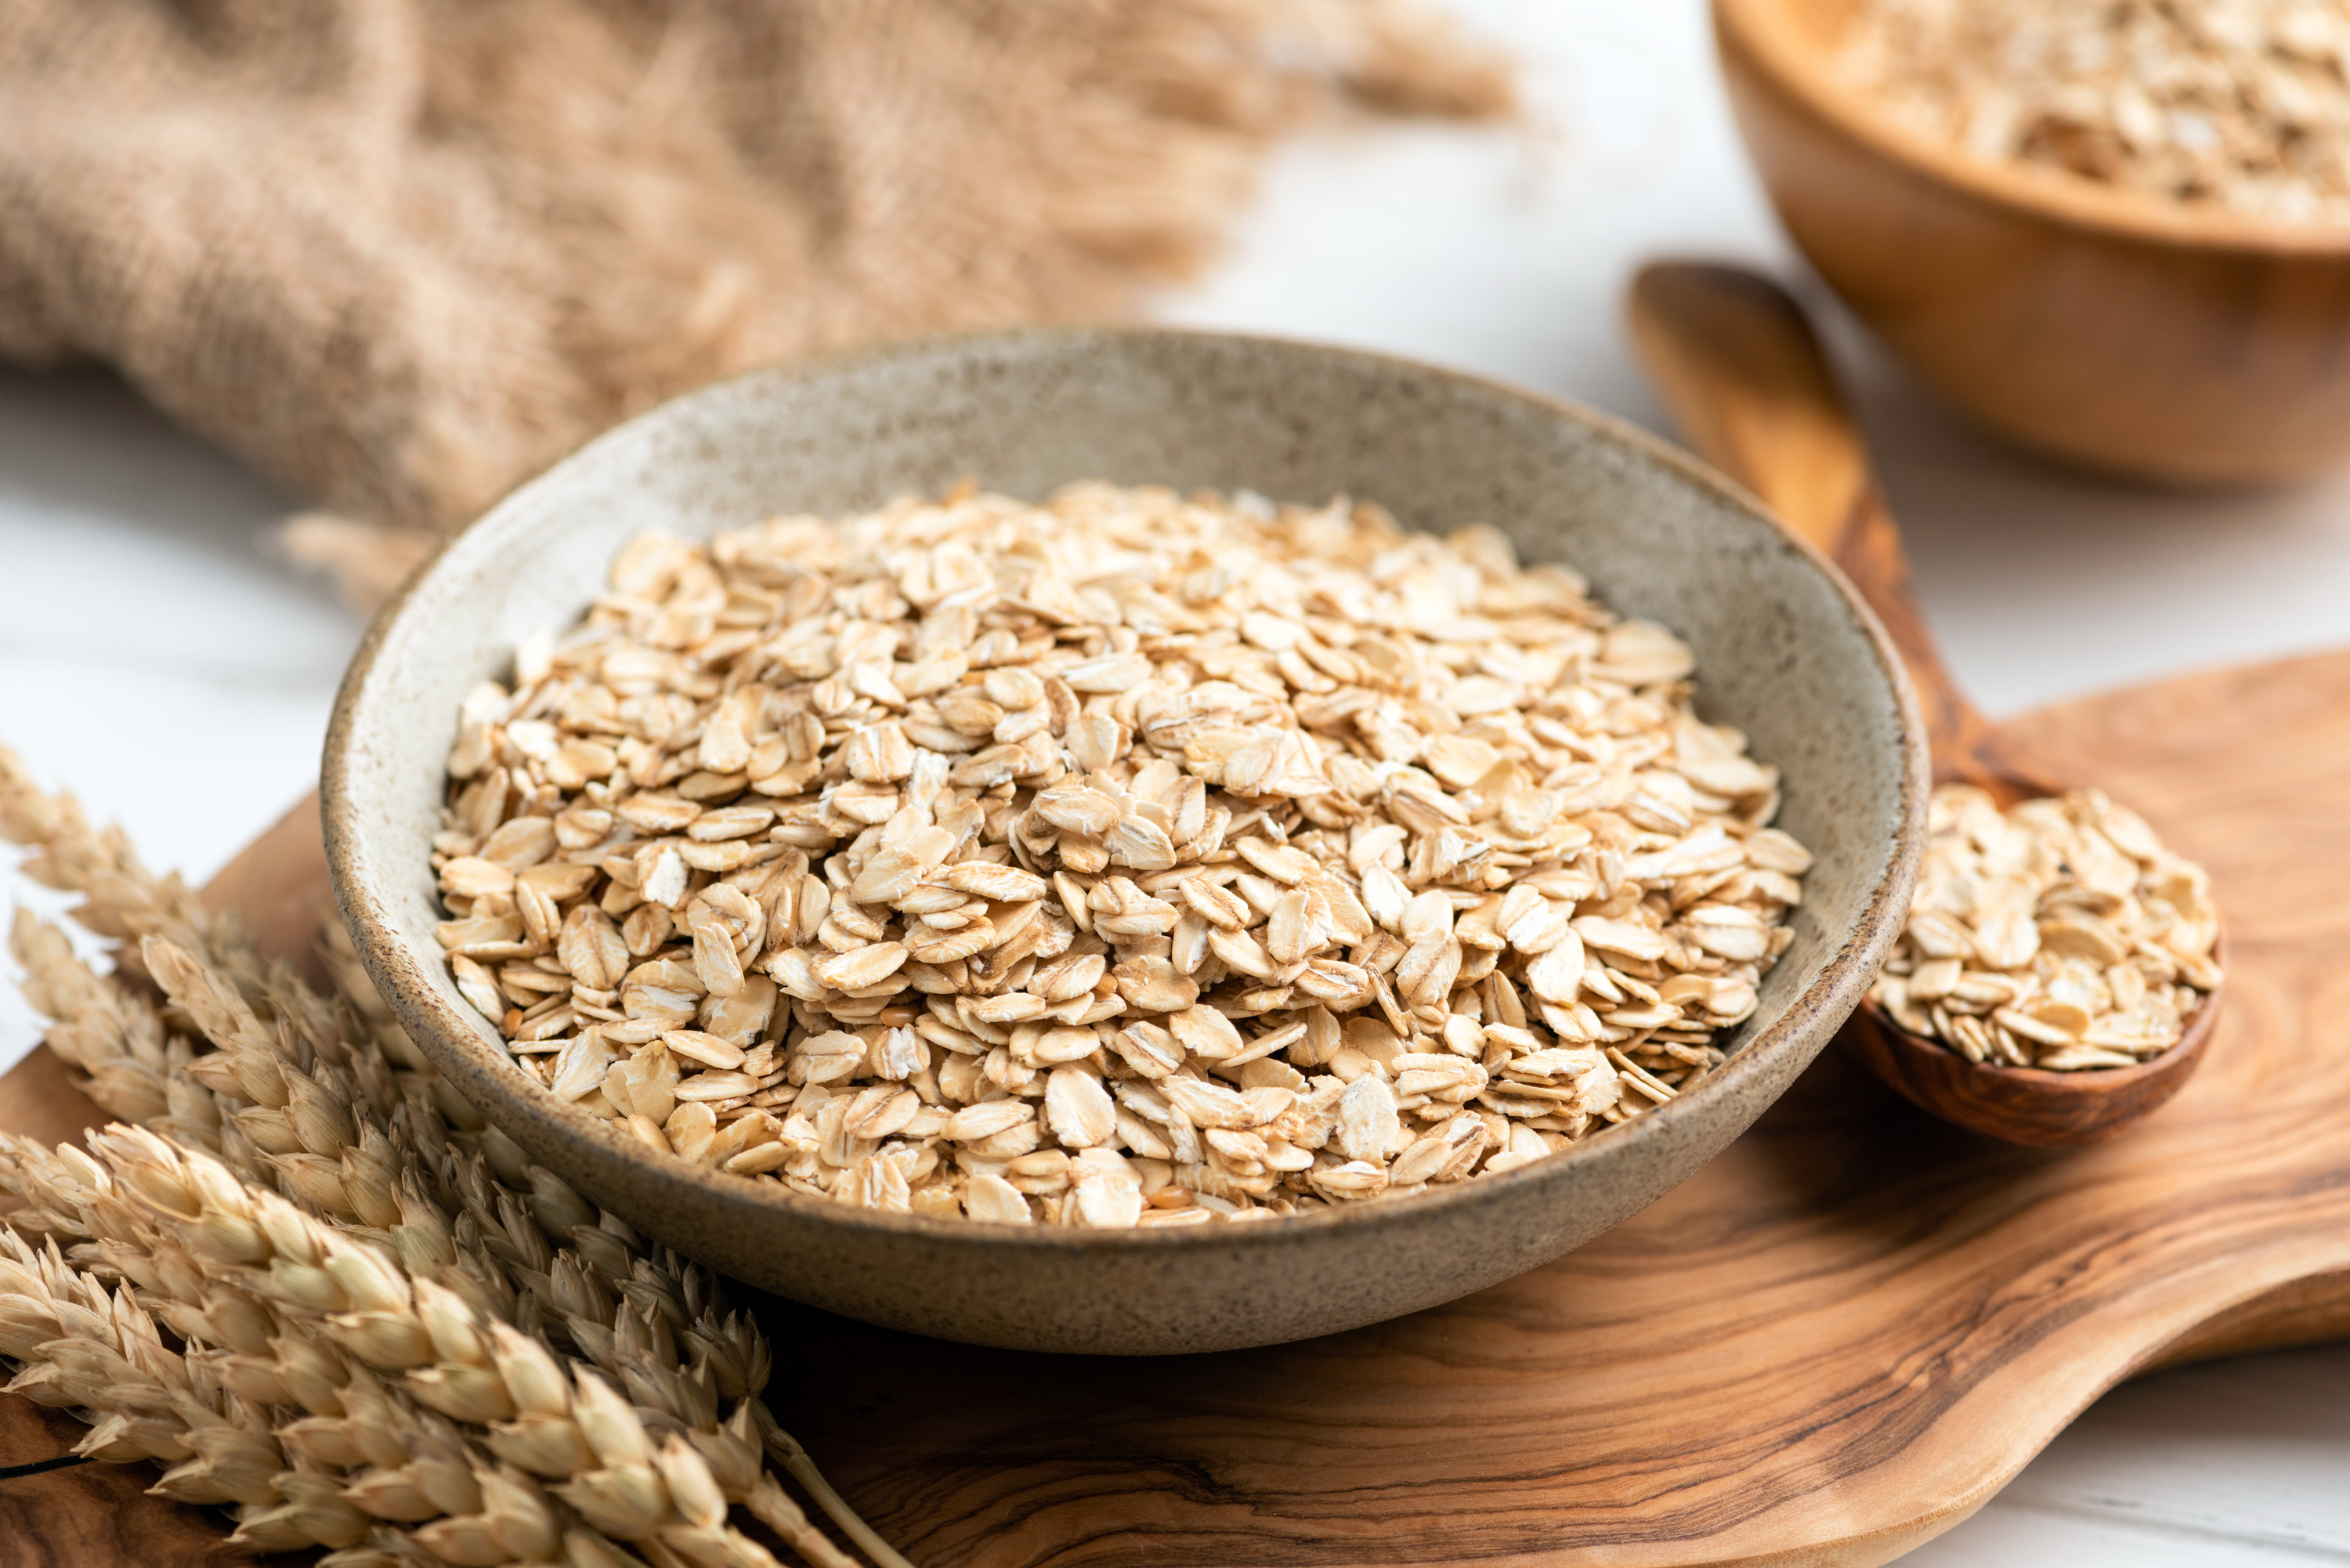 Rolled oats, oat flakes in bowl on wooden table.